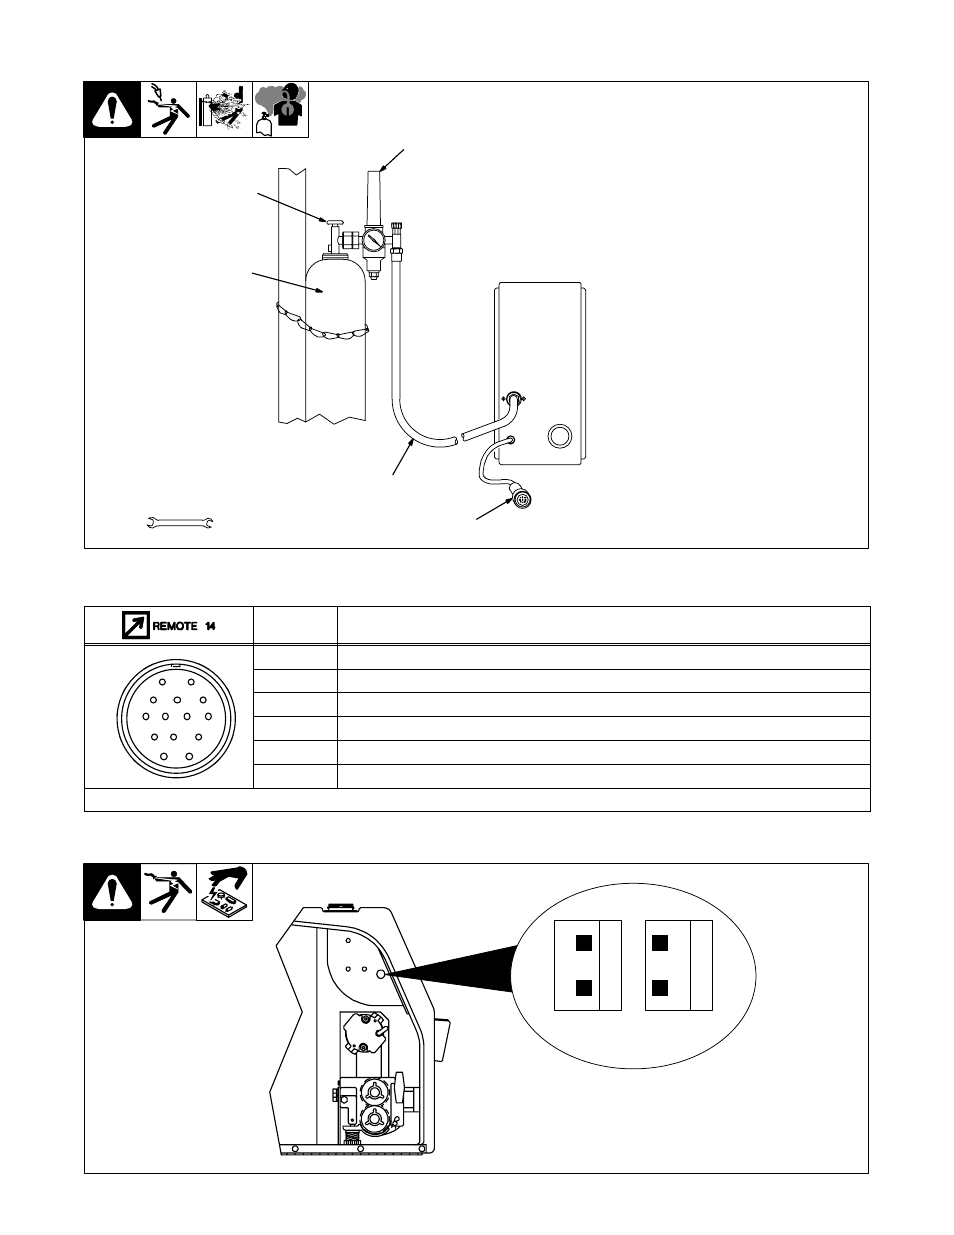 4 Connecting Shielding Gas And 14 Pin Plug 5 Dc Switch Wiring Diagram Prug Information 6 Setting Optional Wire Speed Meter Range Miller Electric S 22p12 User Manual Page 16 28